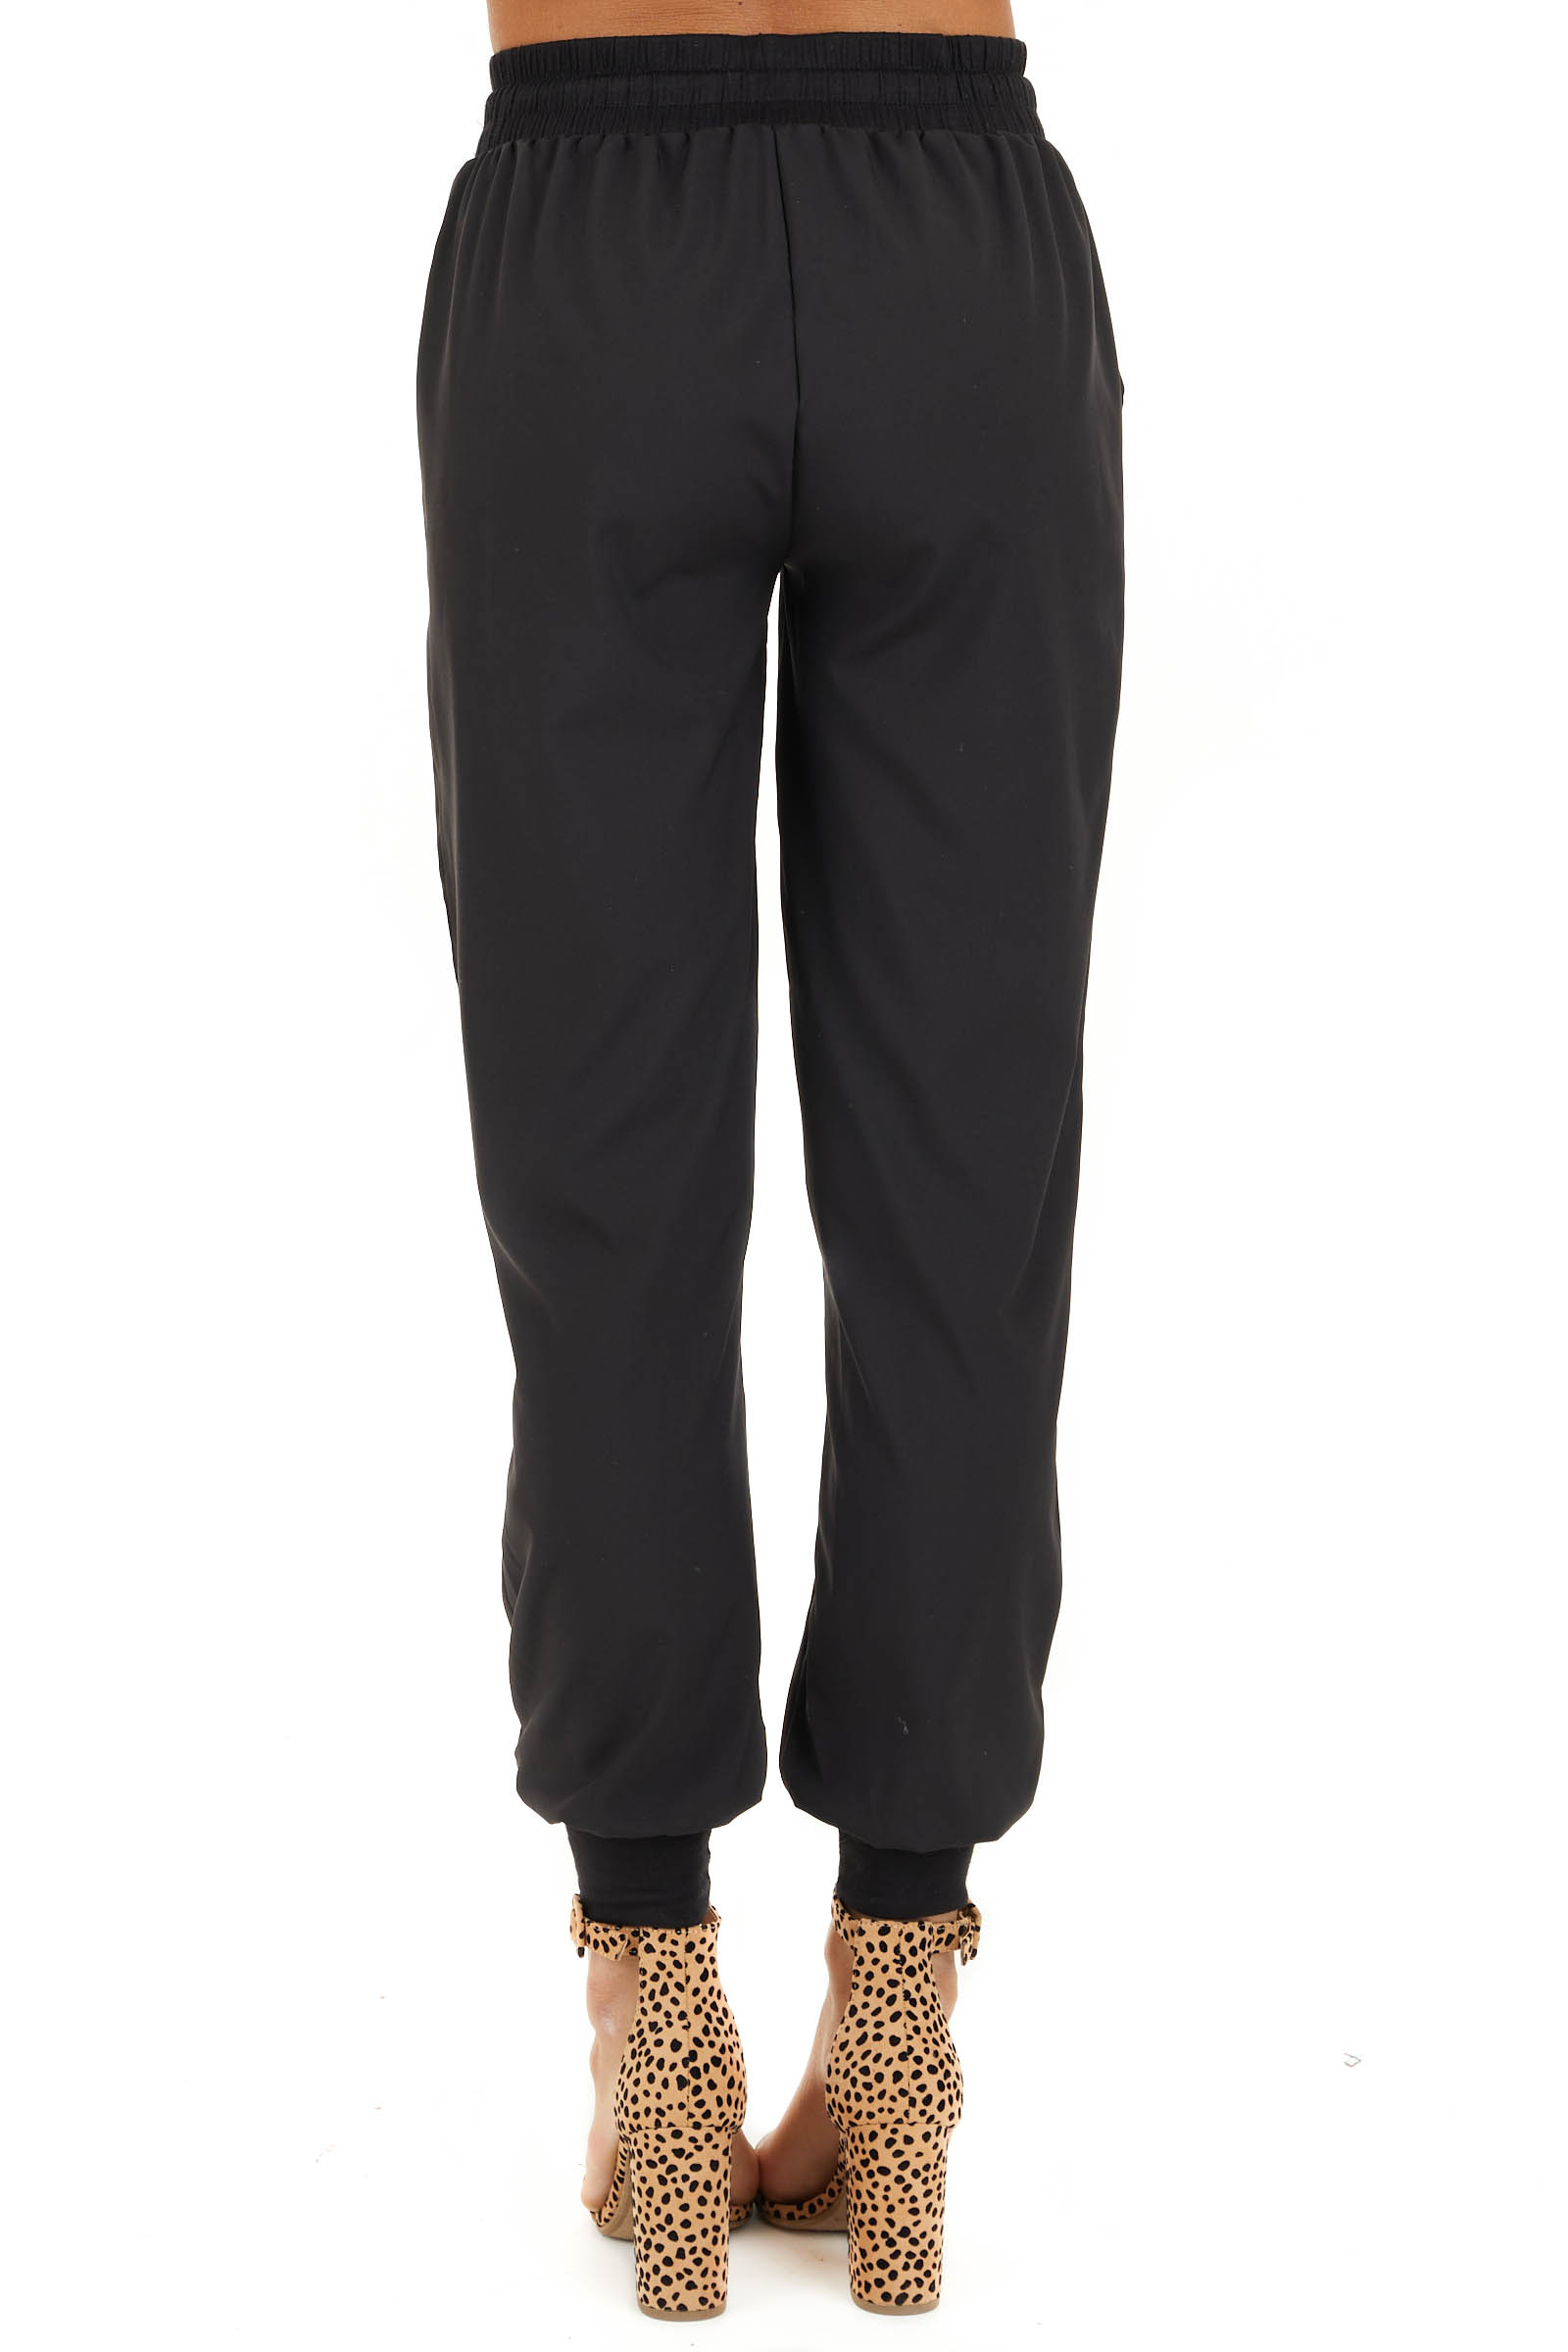 Black Jogger Pants with Elastic Waist and Pockets back view